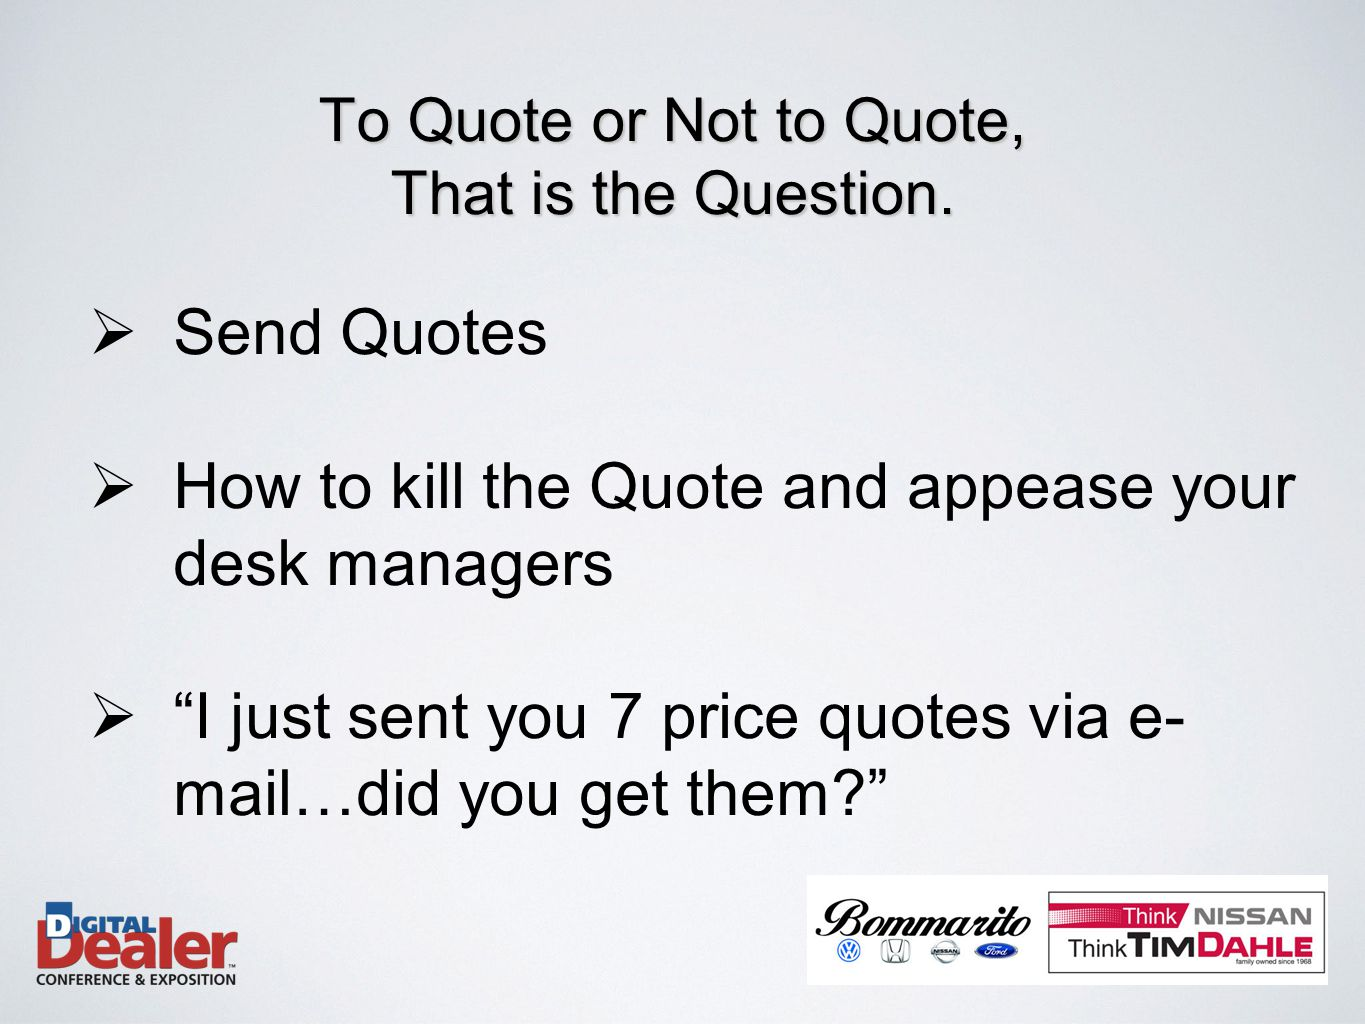  Send Quotes  How to kill the Quote and appease your desk managers  I just sent you 7 price quotes via e- mail…did you get them To Quote or Not to Quote, That is the Question.